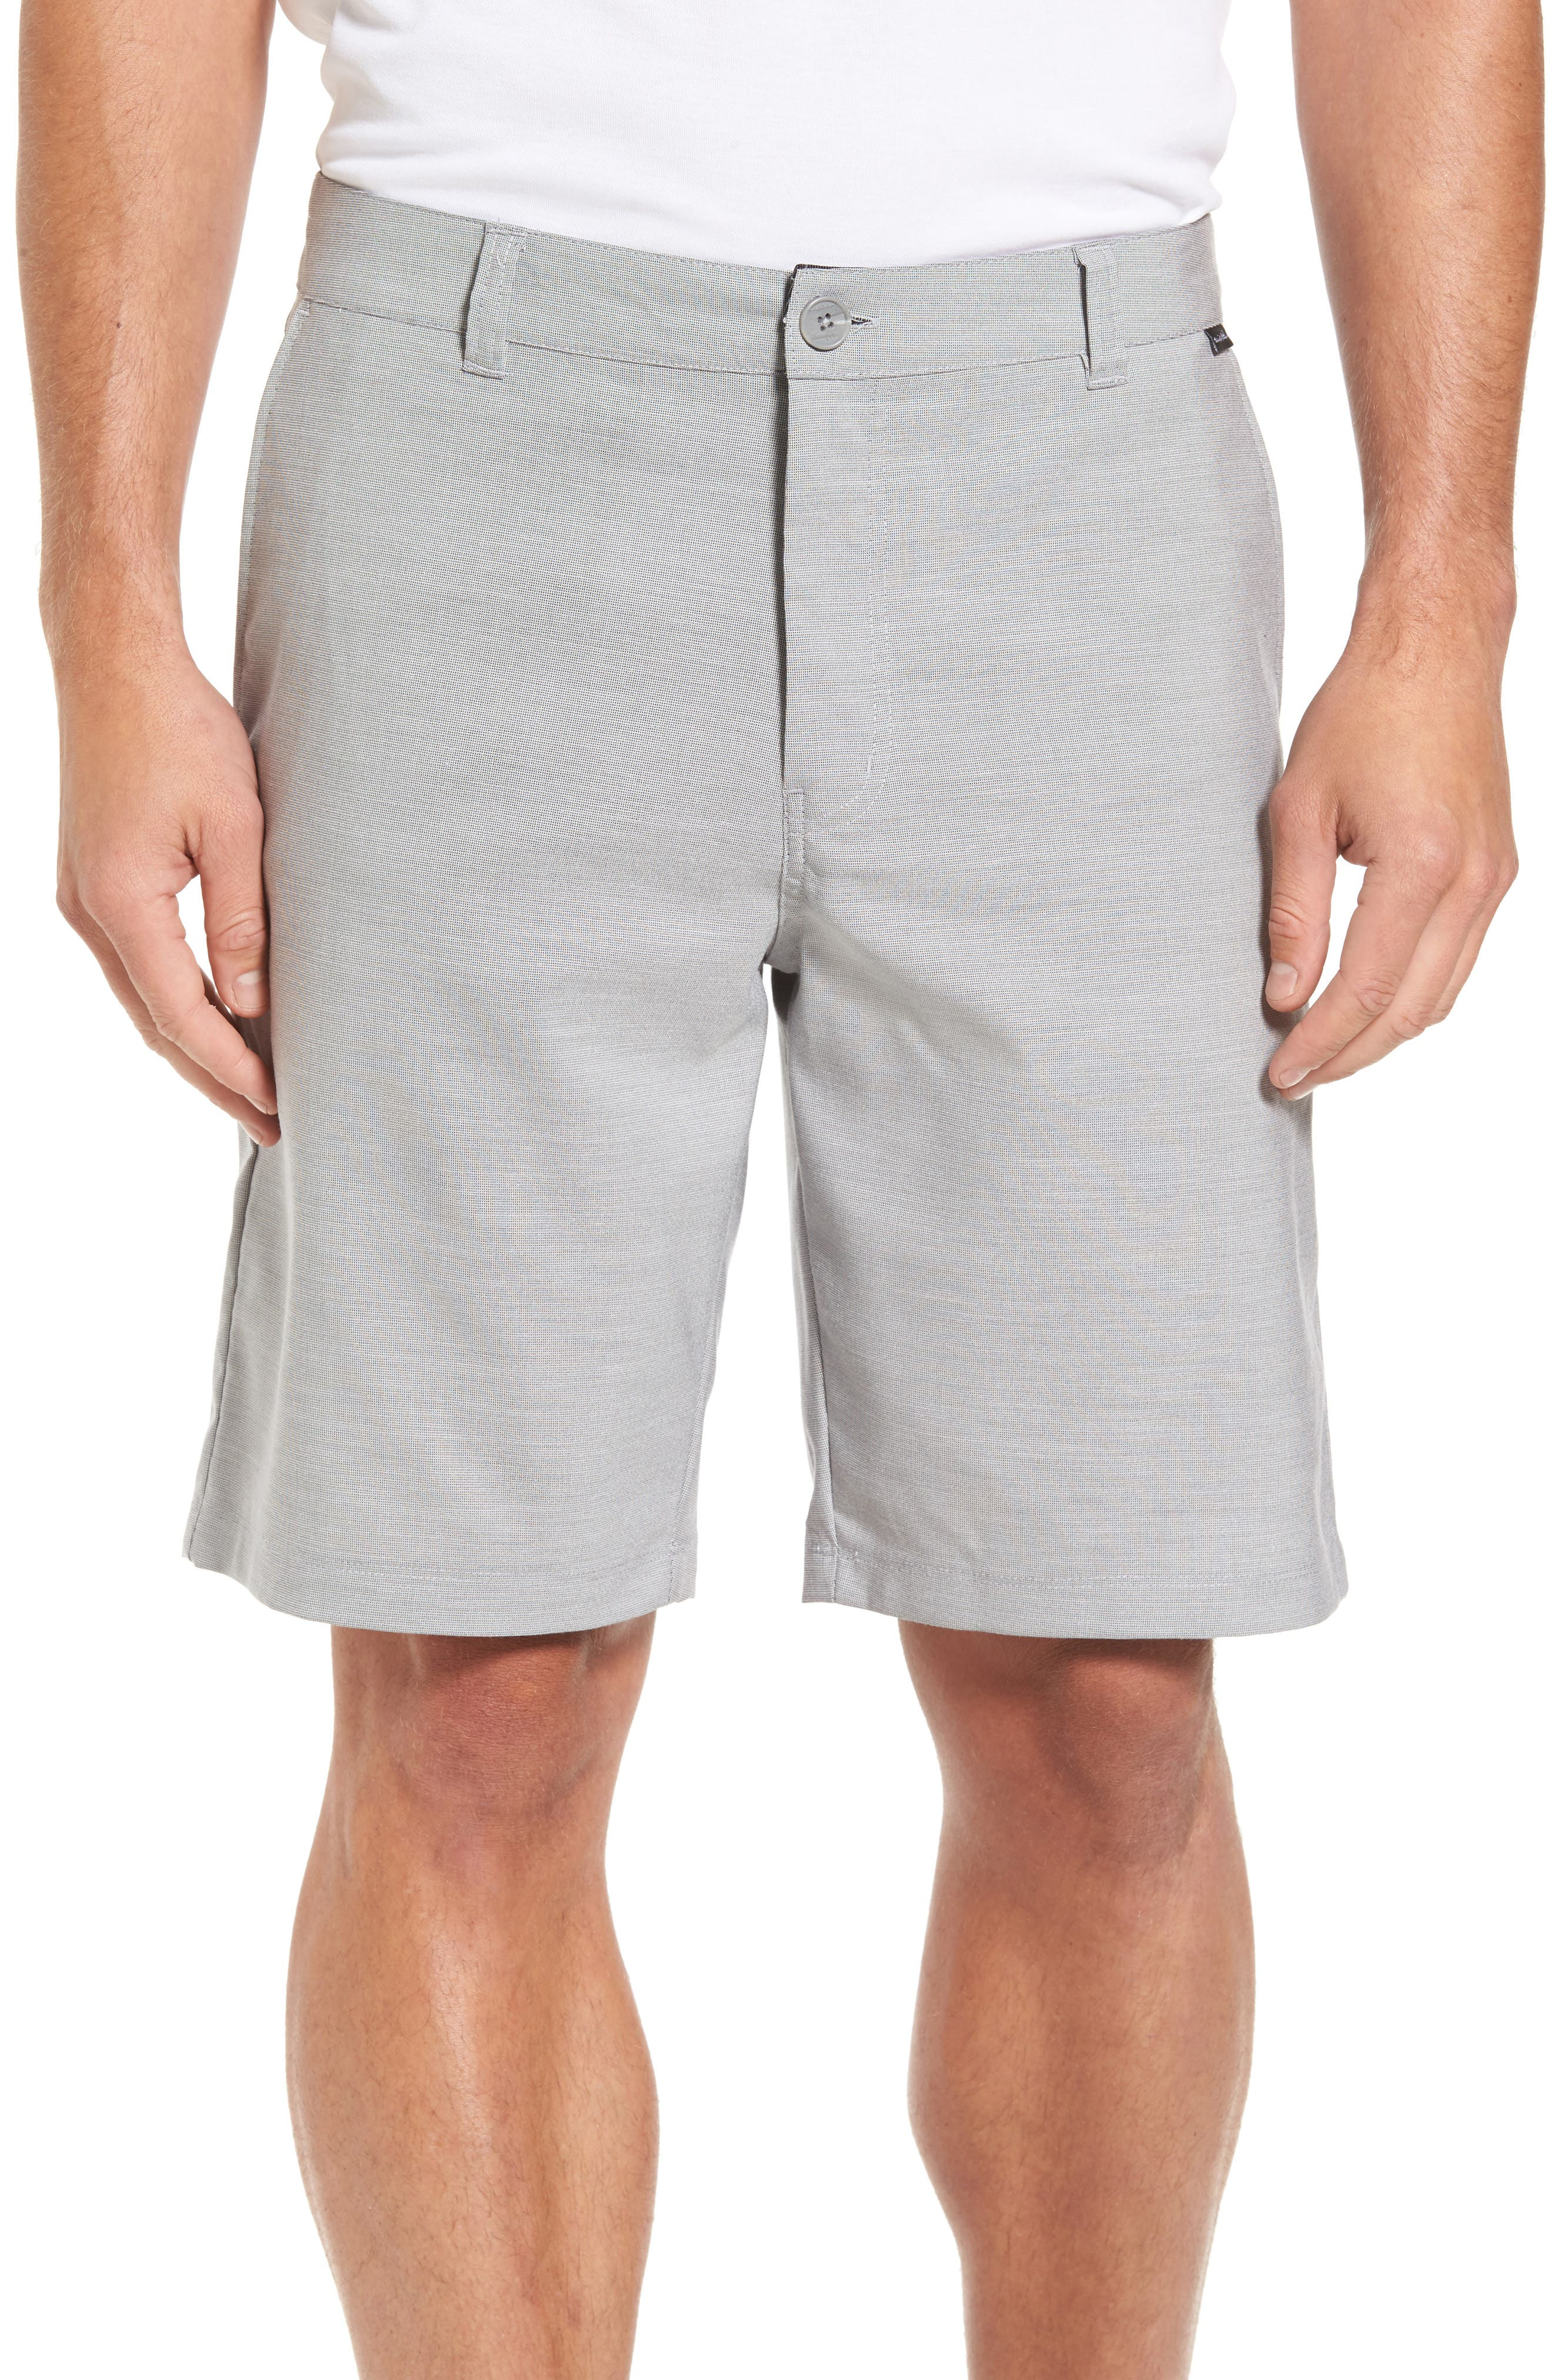 Fast Track Shorts,                         Main,                         color, Alloy